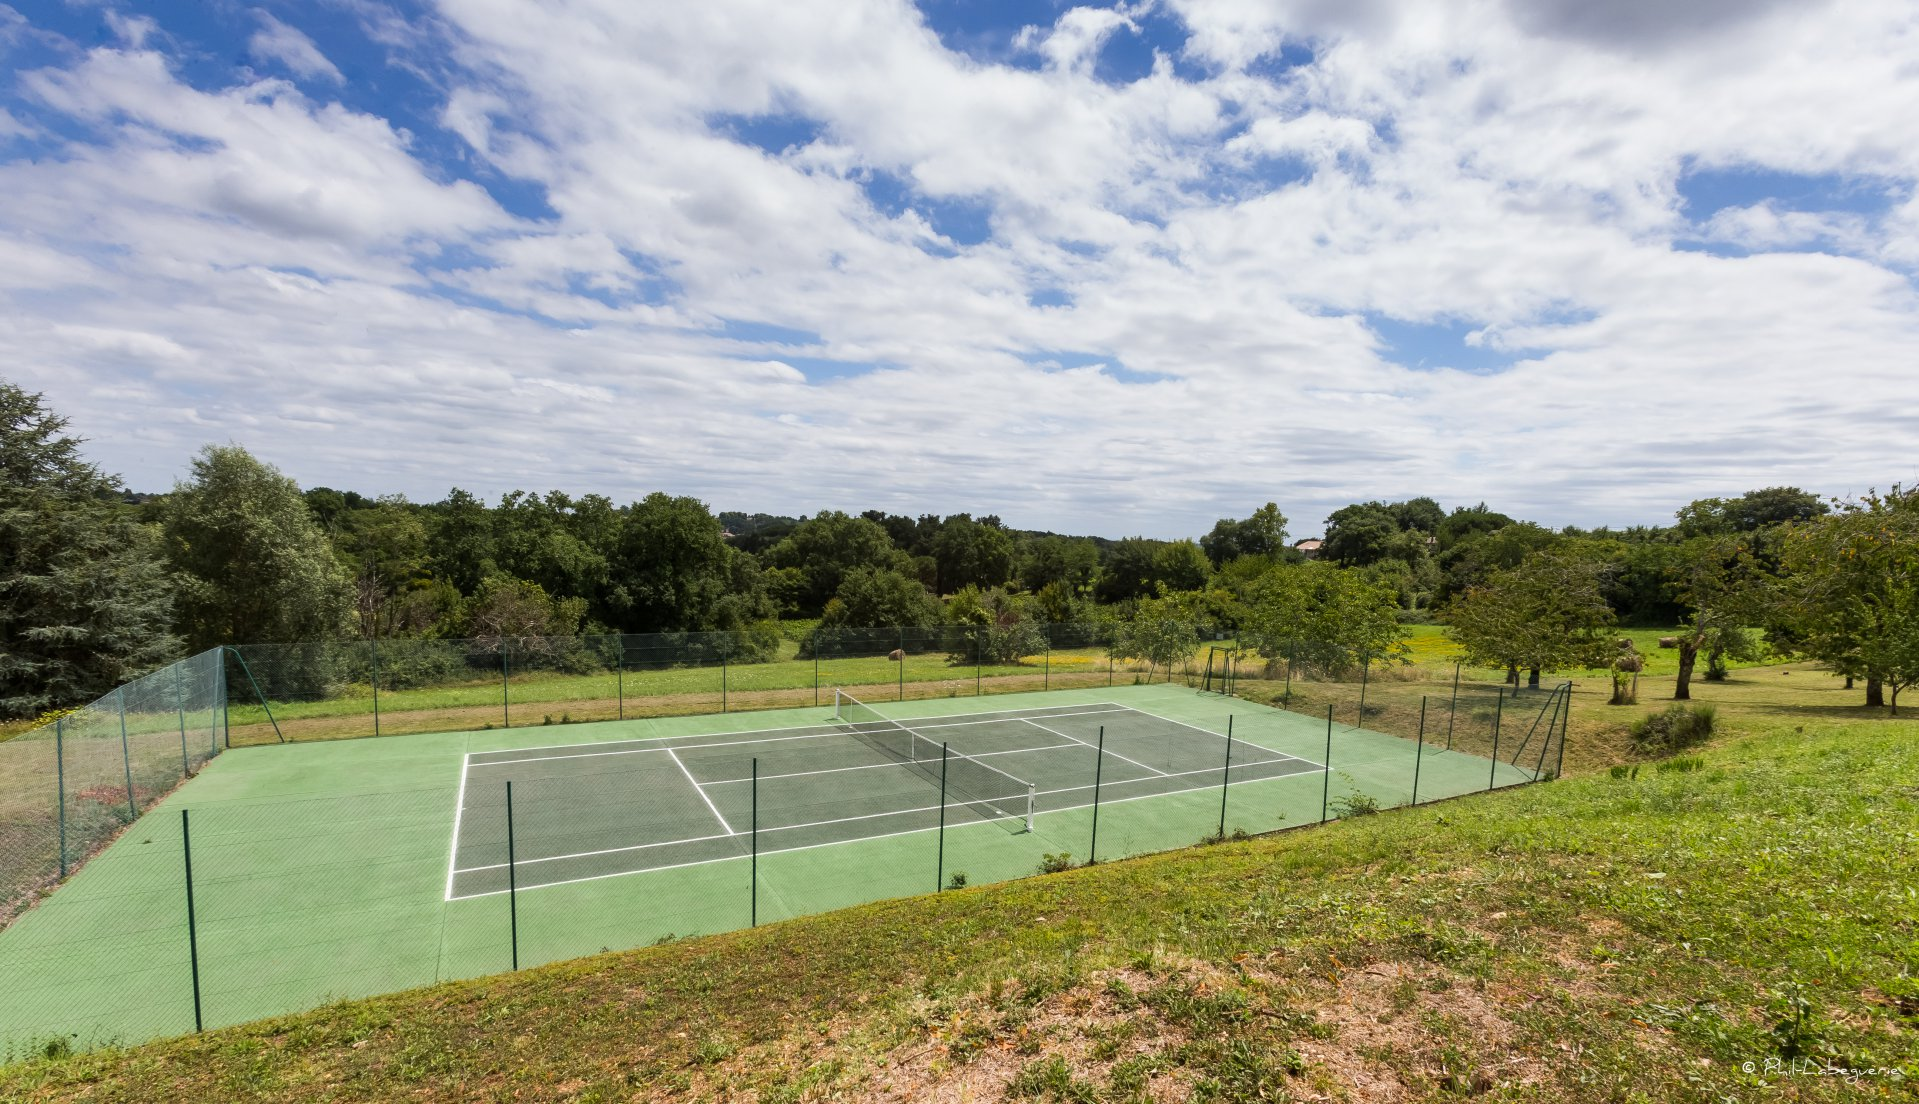 CAMBES PROPRIETE SUR 2.5 HA TENNIS PISCINE